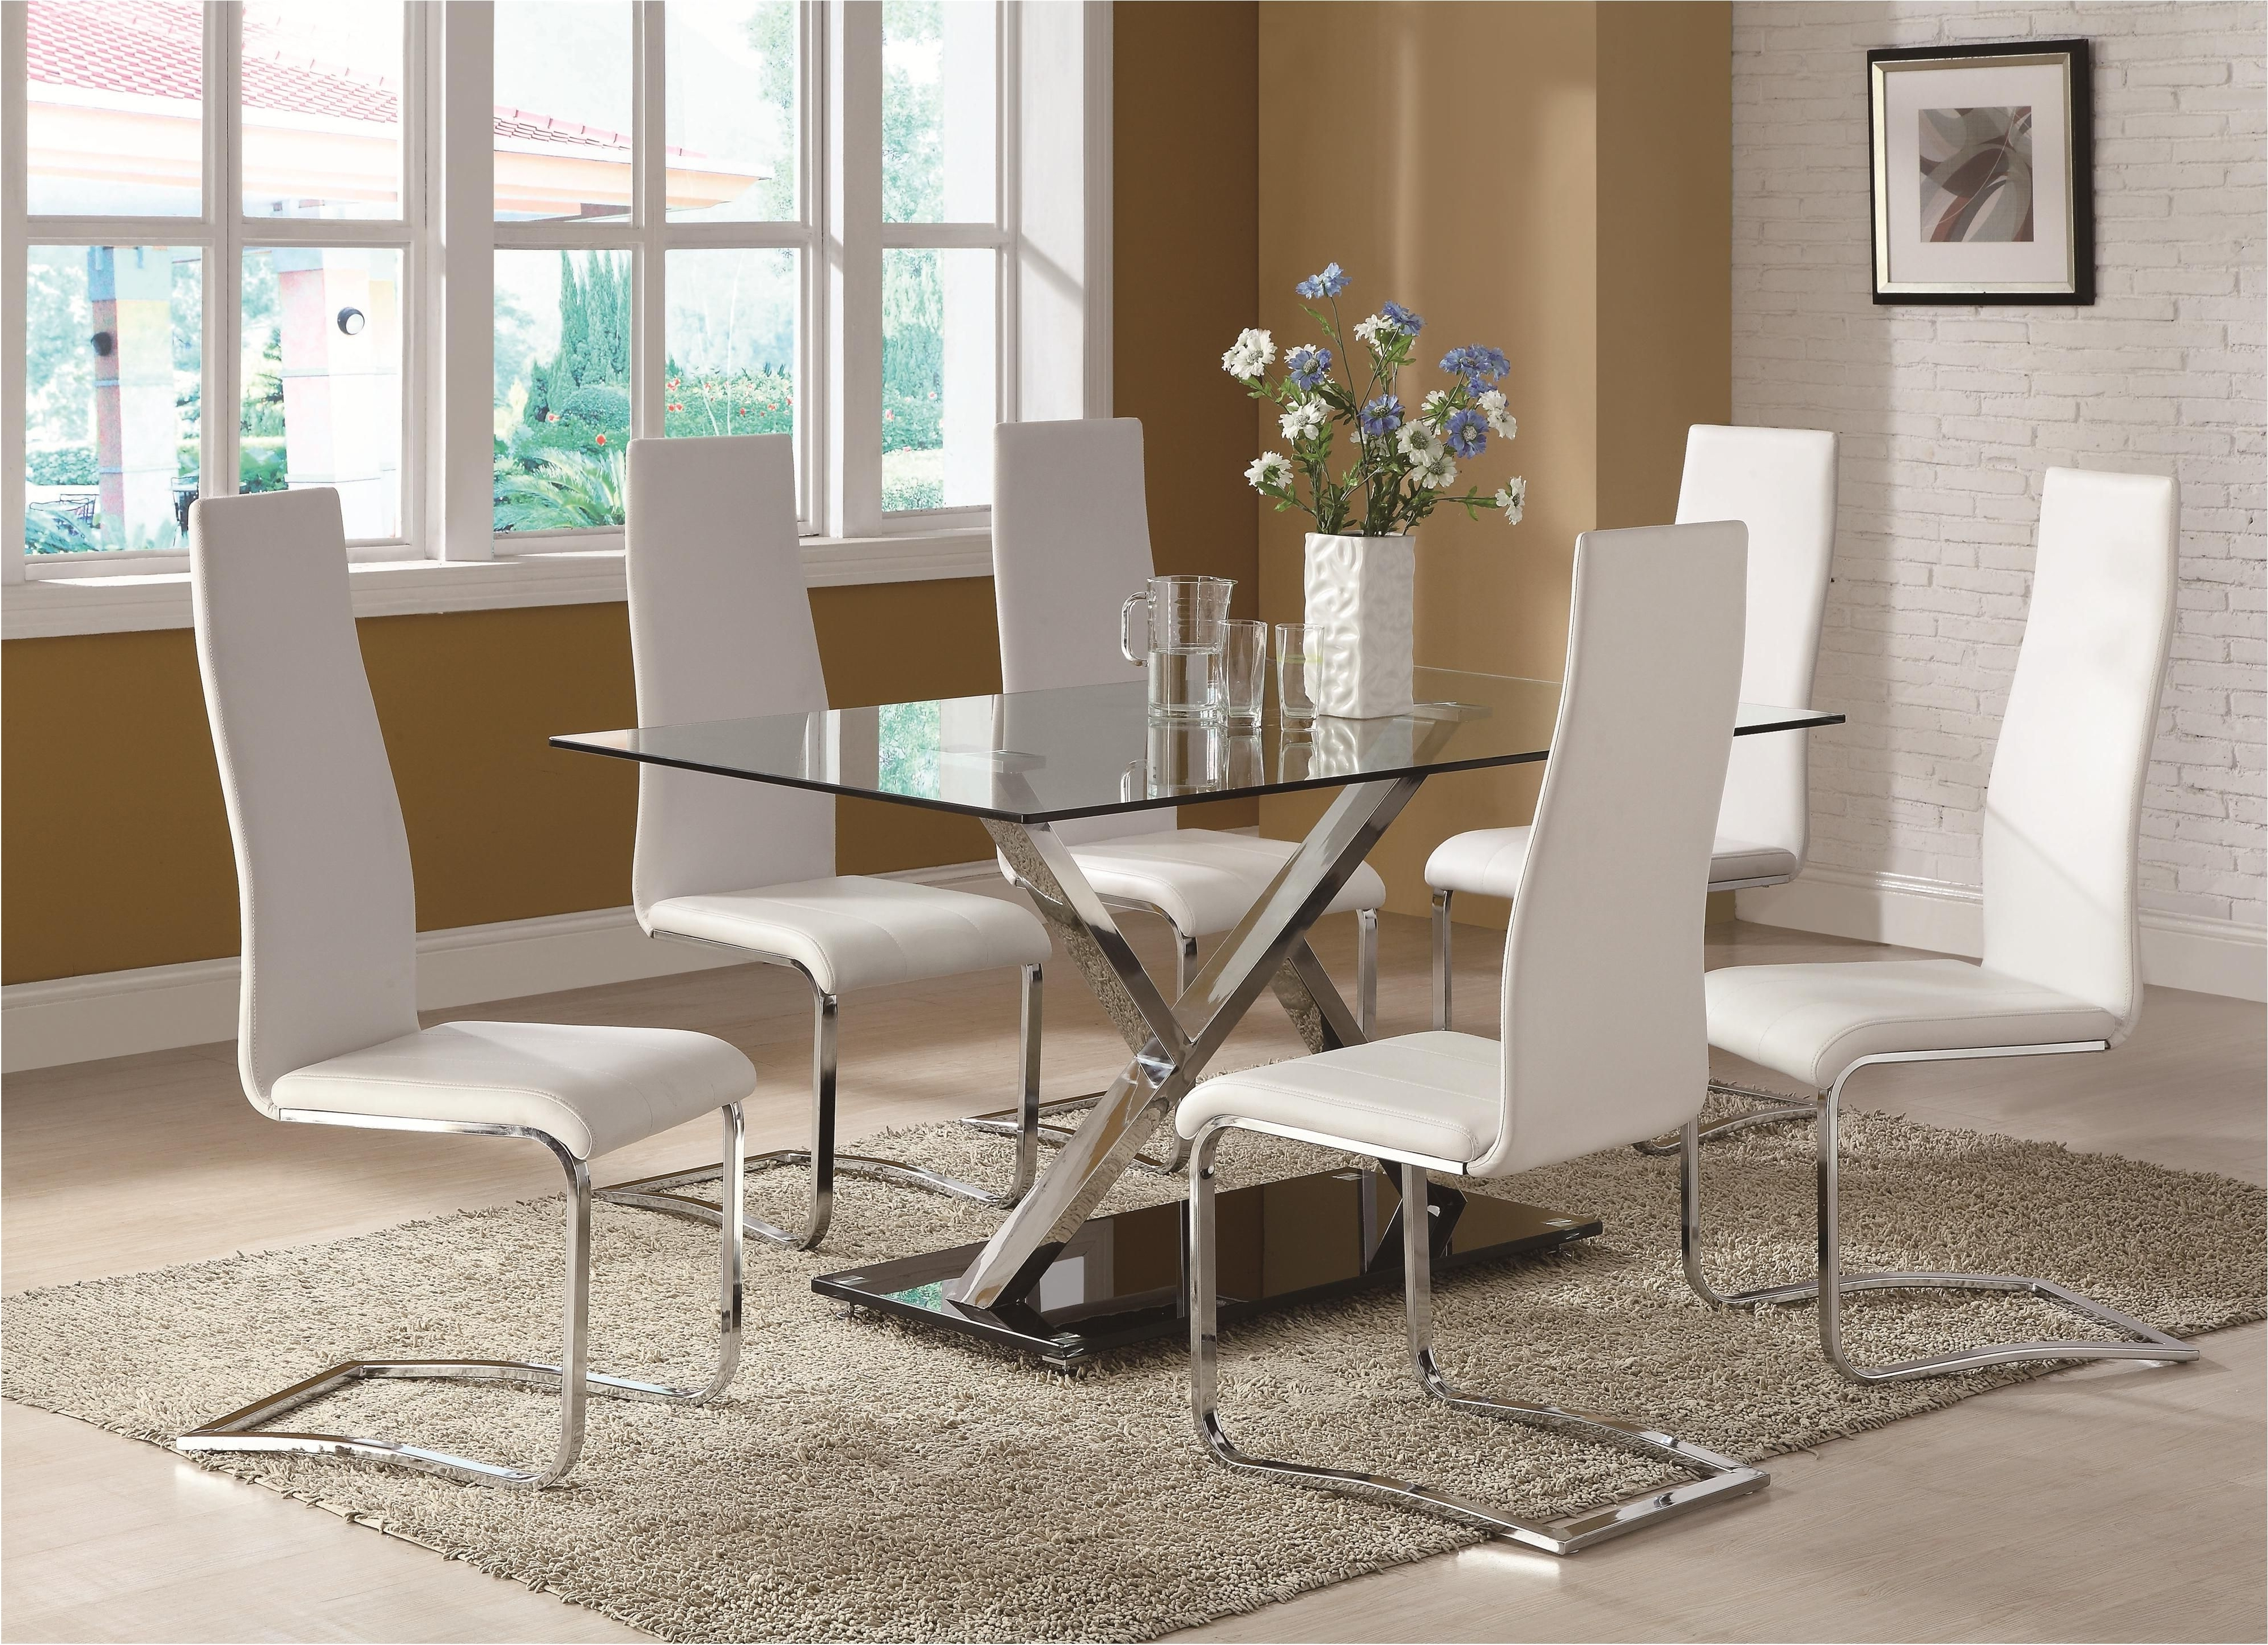 Current Nice Breathtaking Modern Glass Dining Table Set 2 Room Sets Be Black In Modern Dining Room Furniture (Gallery 15 of 25)